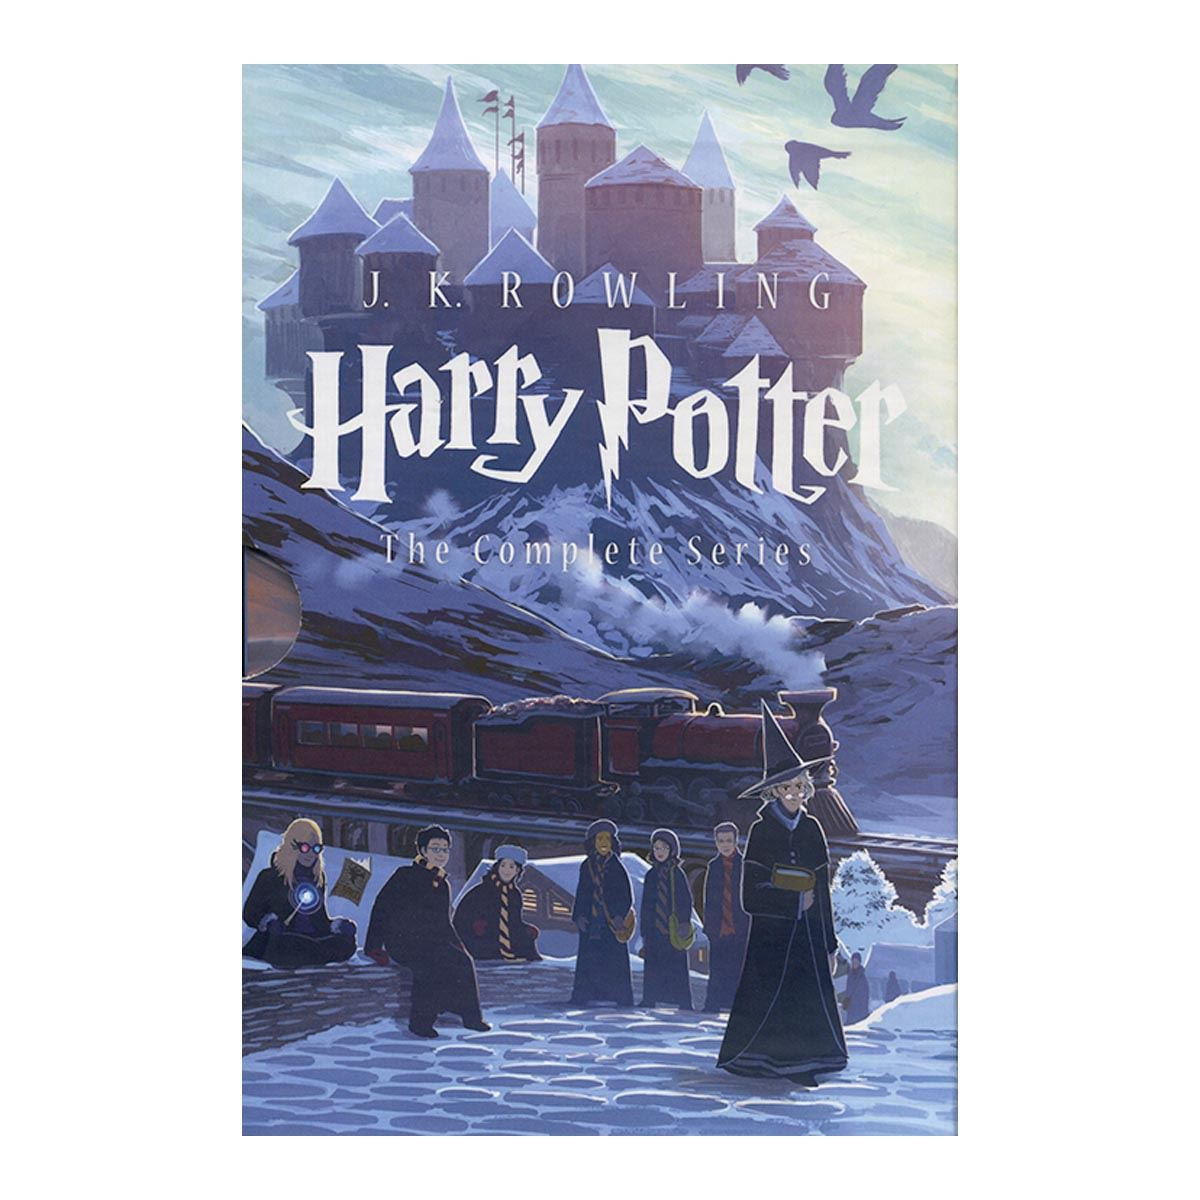 Harry potter the complete series Libro - Sanborns